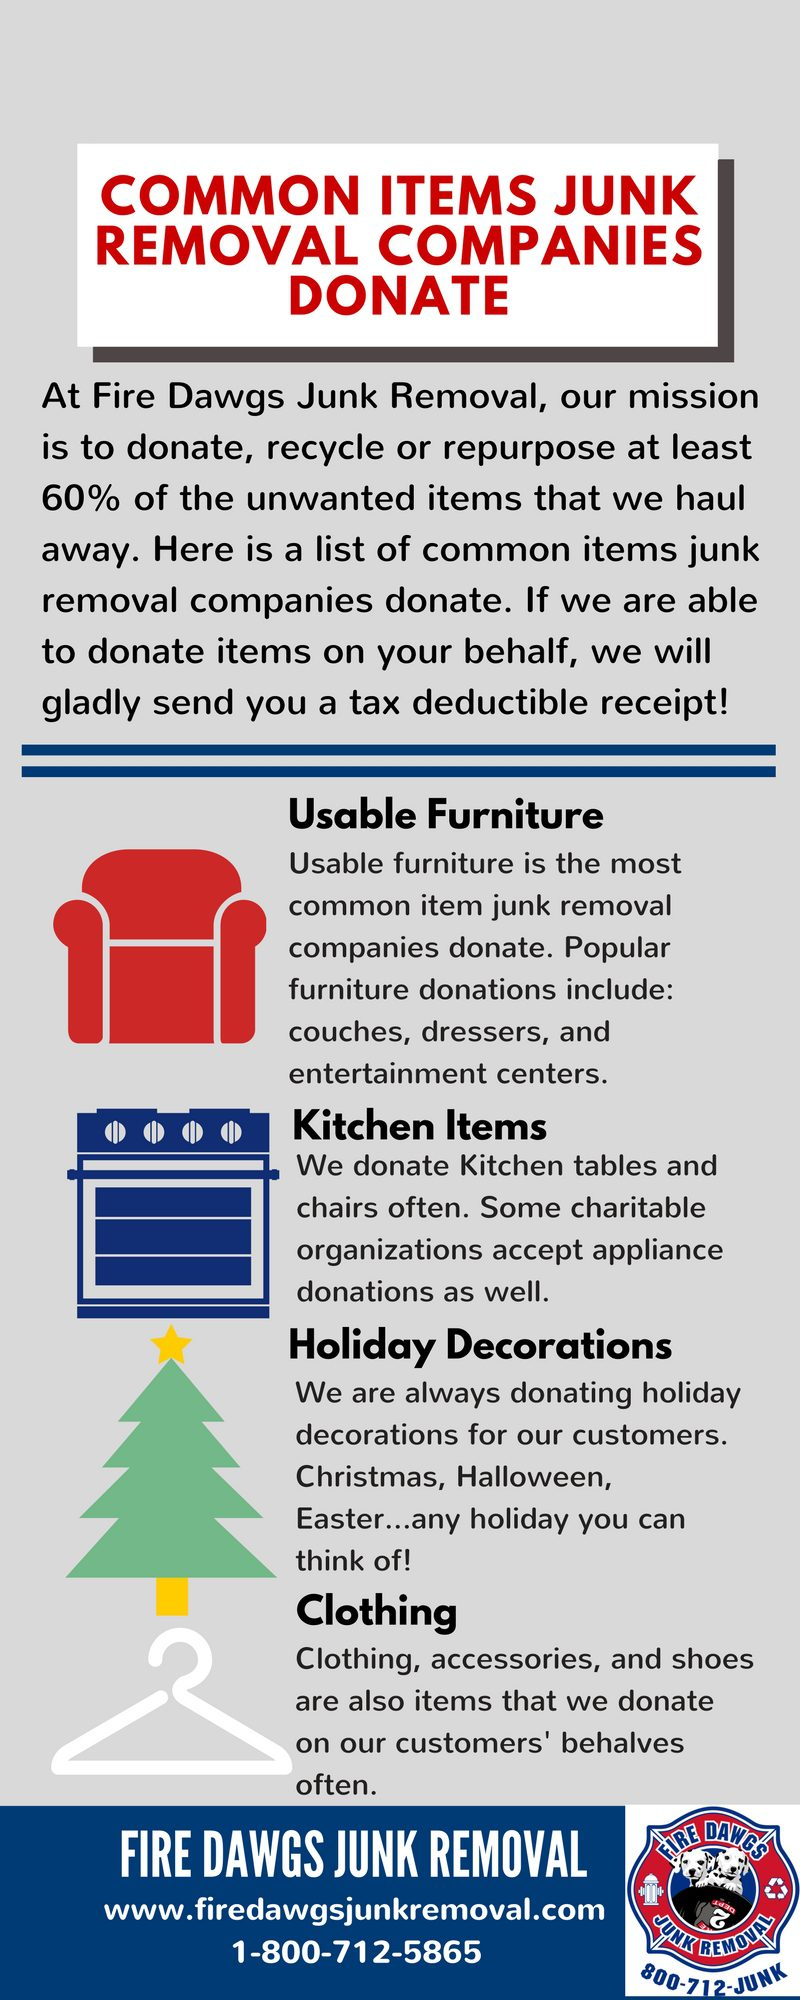 Common Items Junk Removal Companies Donate Infographic